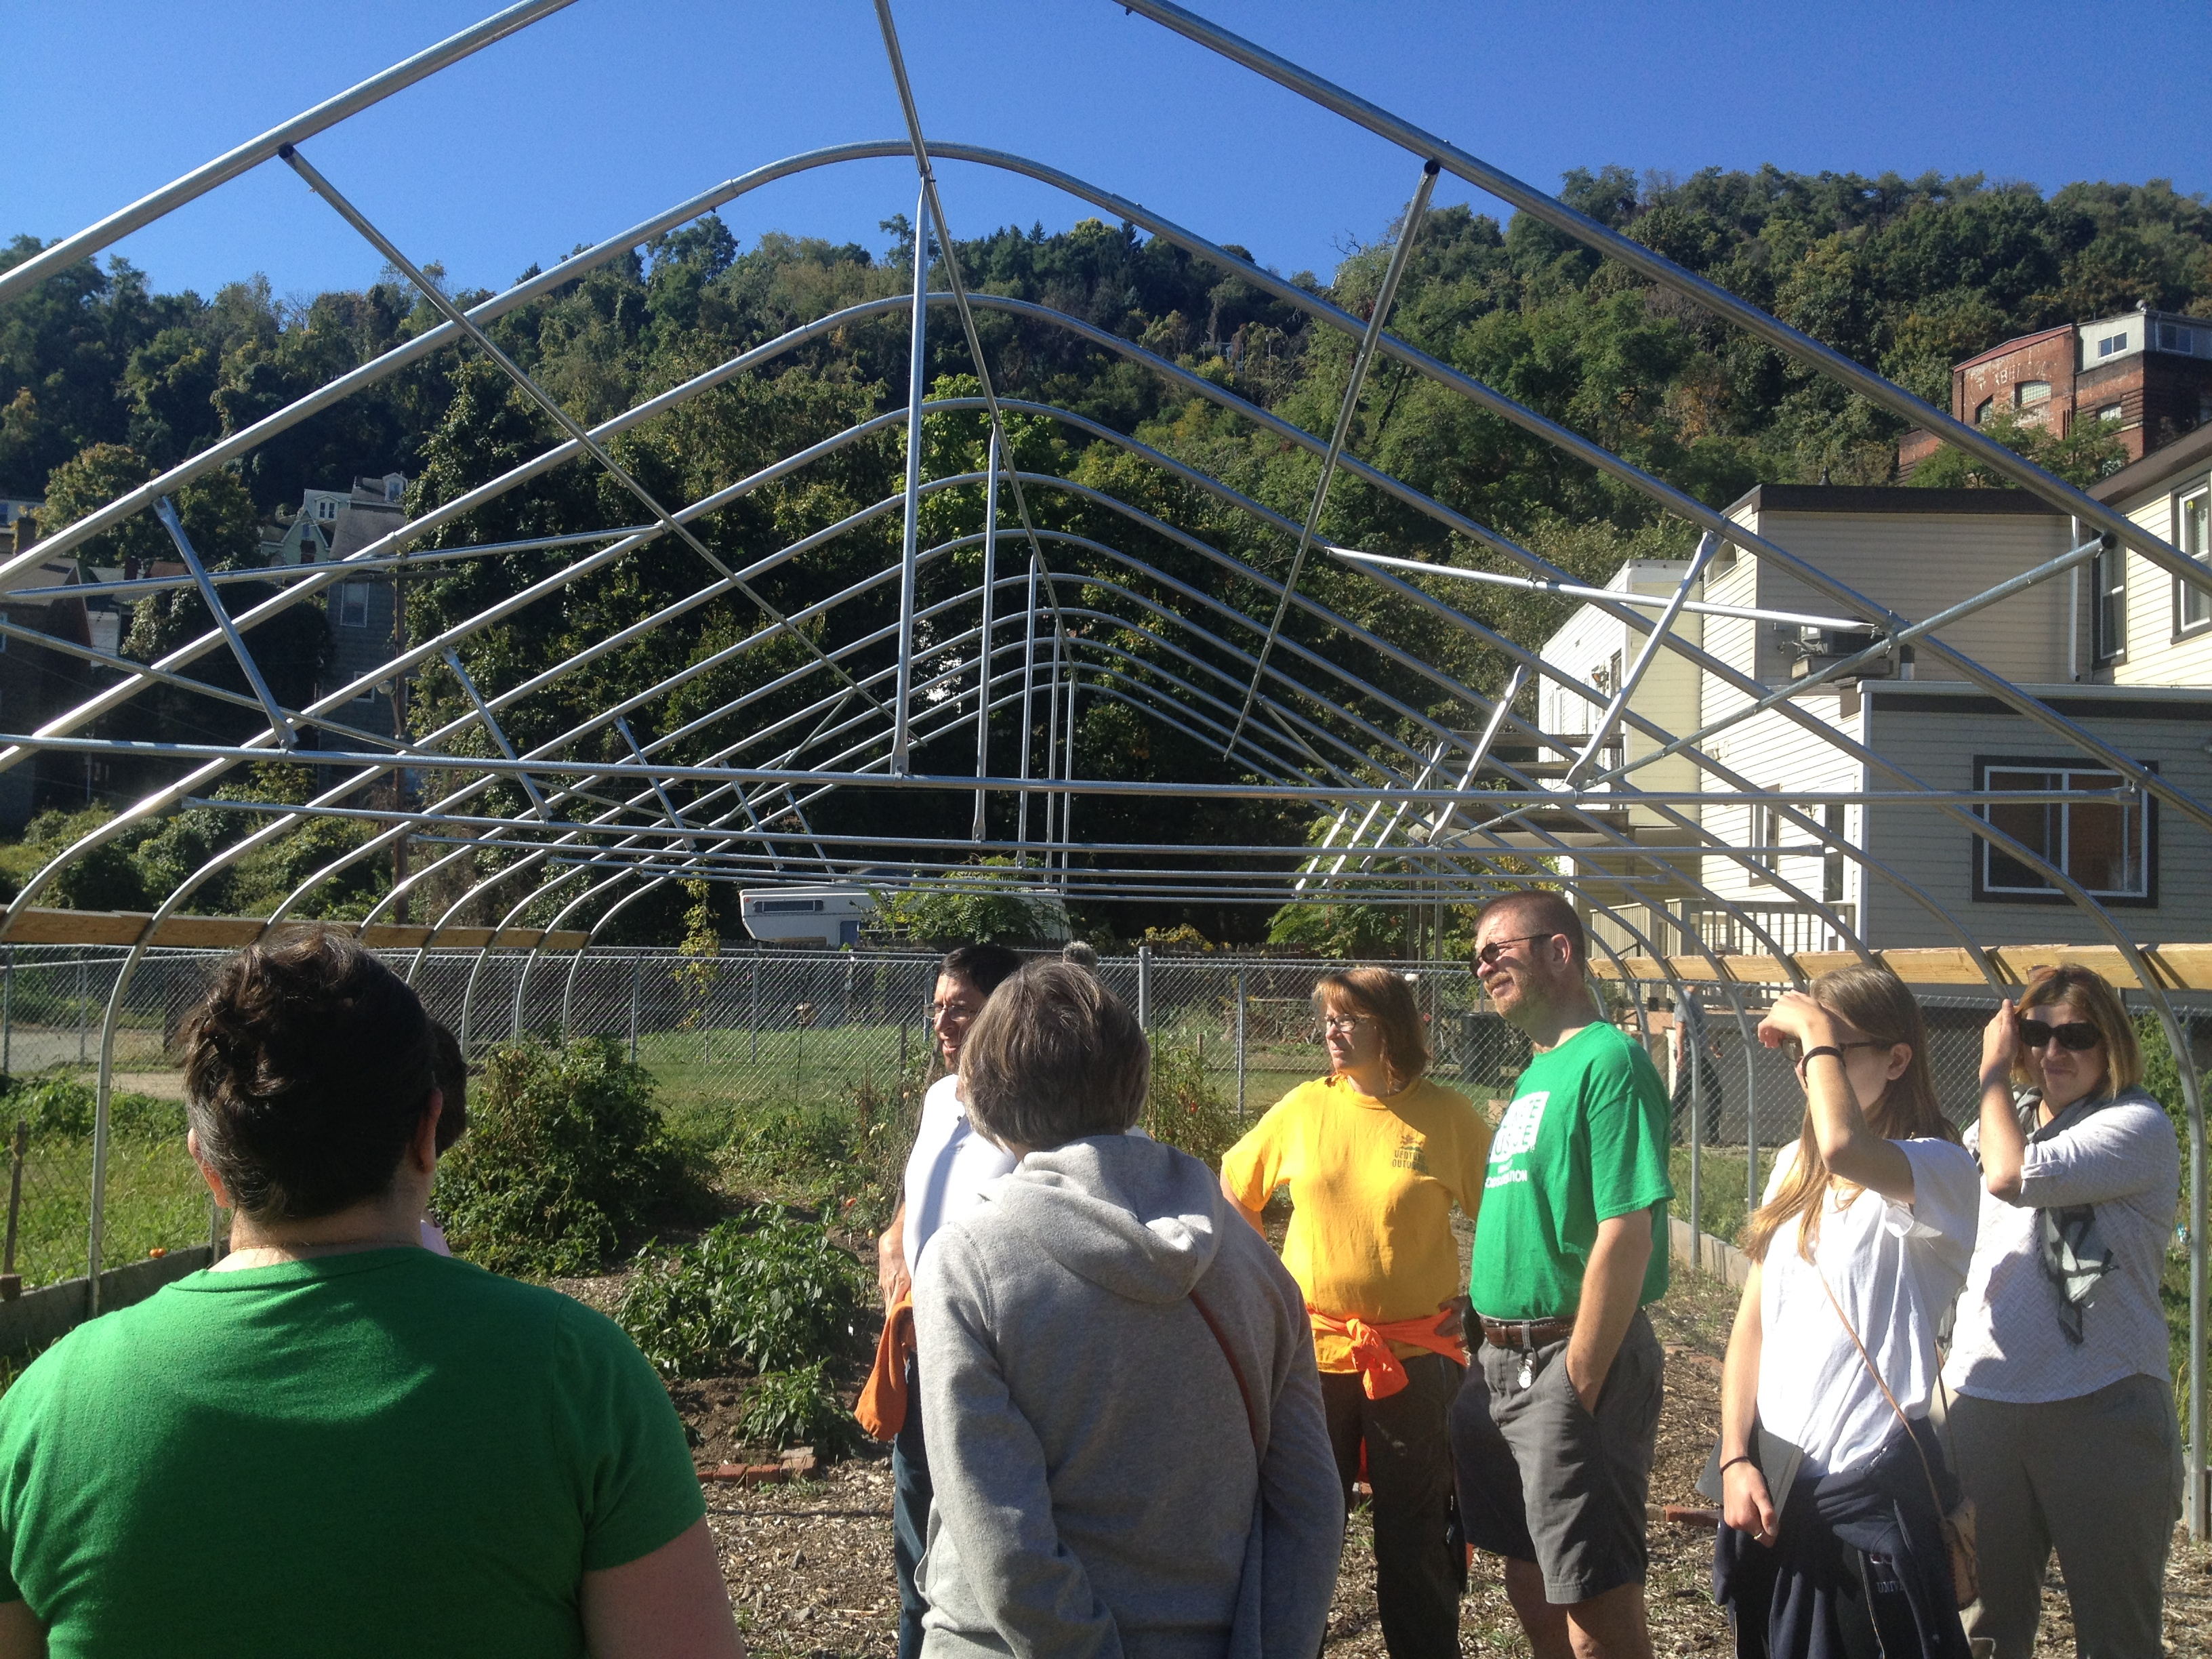 The beginnings of a greenhouse in the community gardens of Millvale.